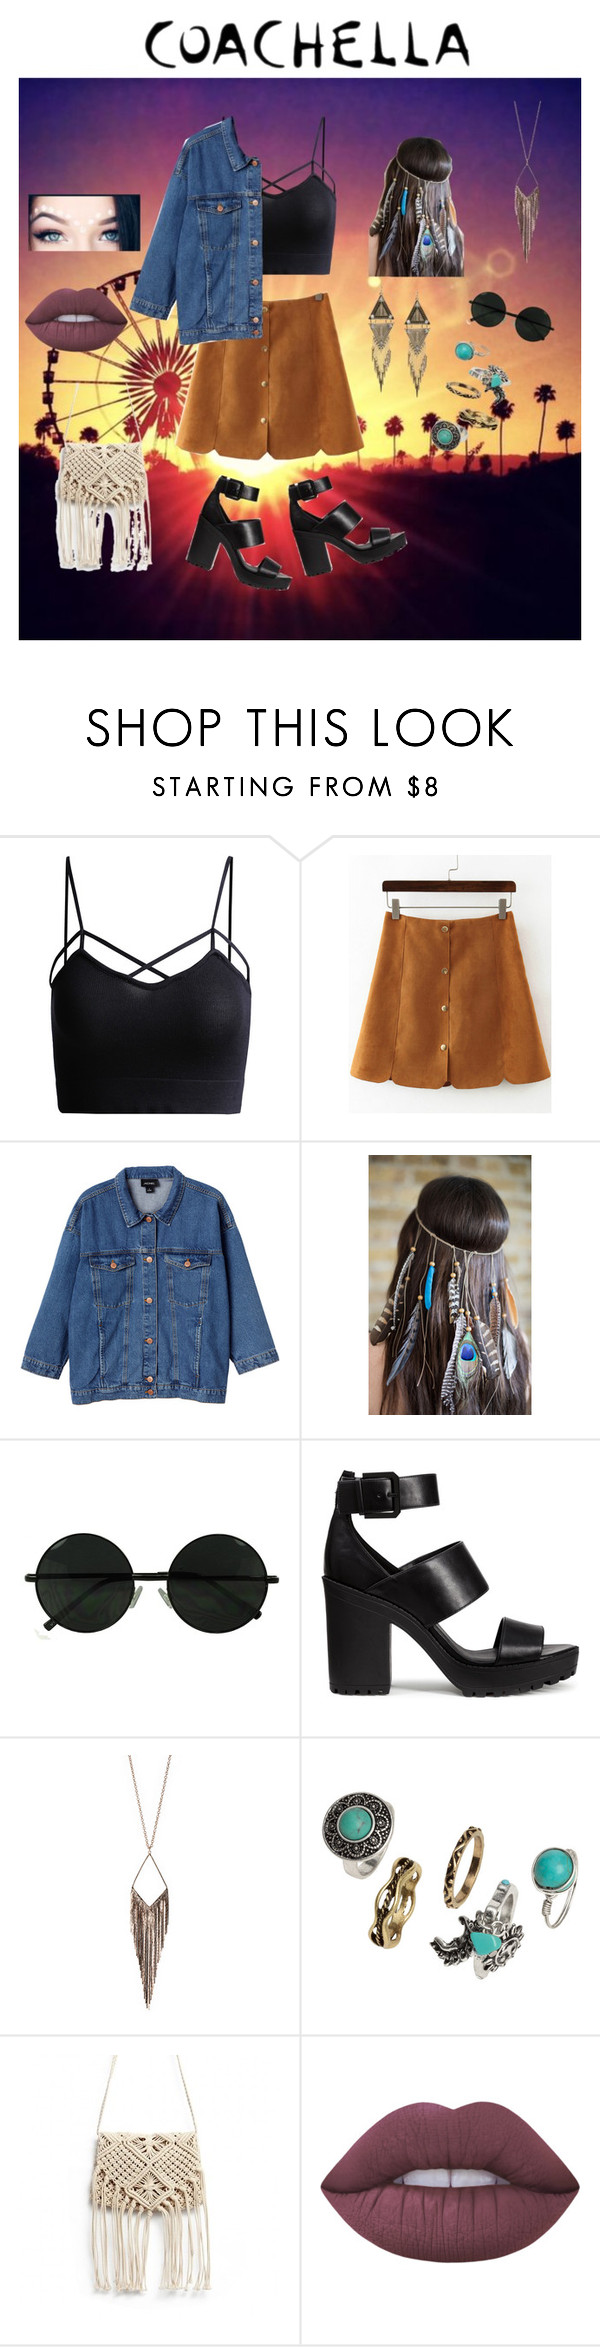 """Coachella 2016"" by unicornfashion5 ❤ liked on Polyvore featuring Monki, H&M, Jules Smith and Lime Crime"